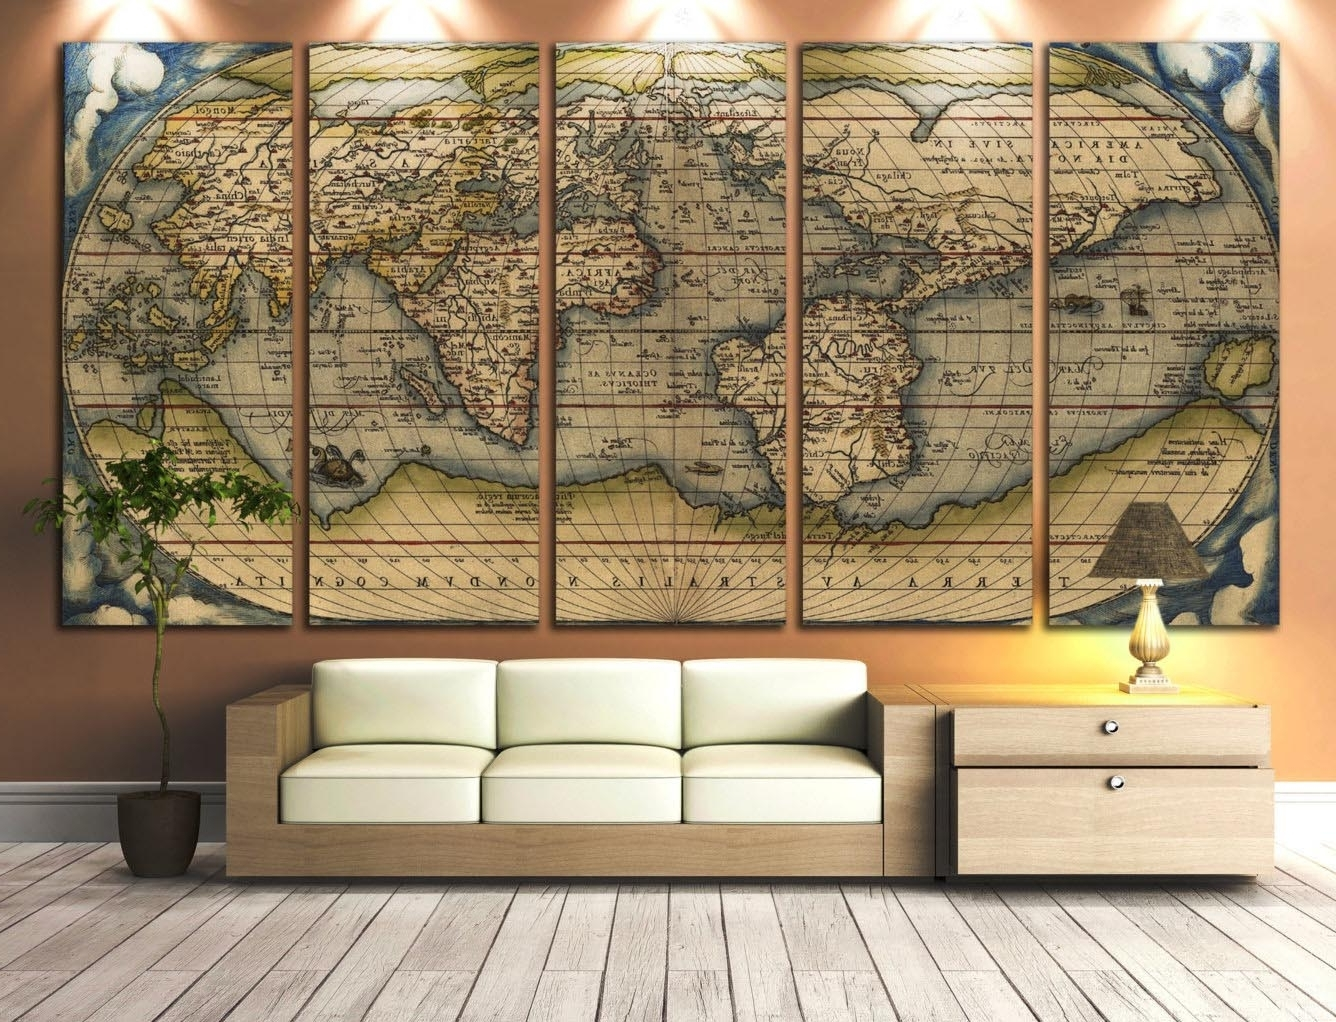 Tapestry Pertaining To Recent Old World Map Wall Art (View 3 of 15)